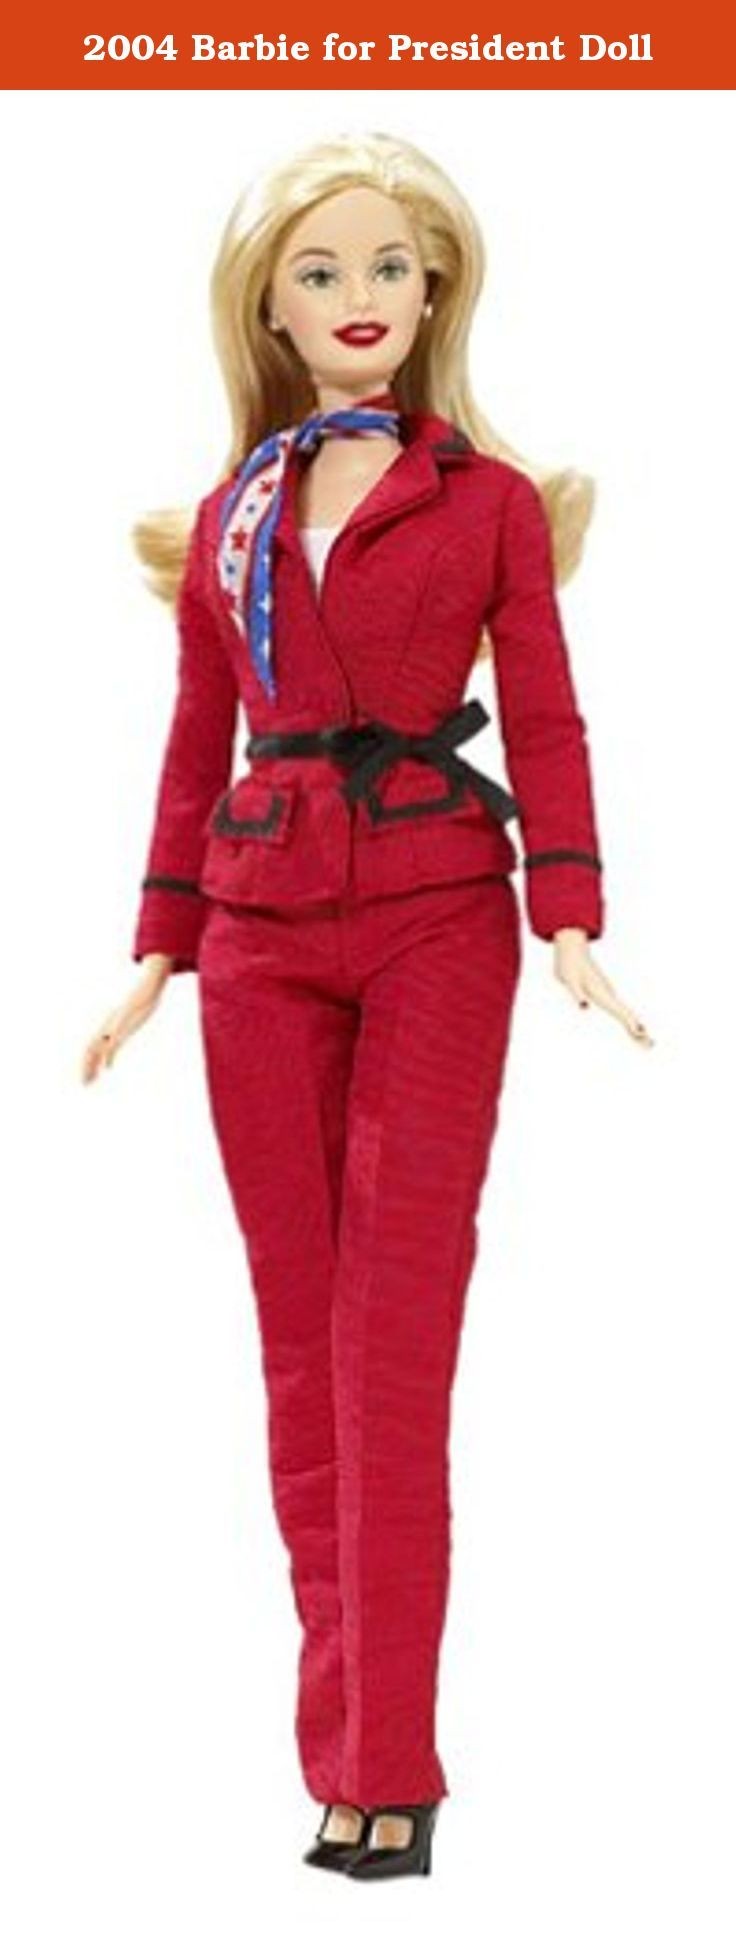 2004 Barbie for President Doll. Made in 2004, this Barbie doll is dressed in red, white, and blue to celebrate the Presidential election.